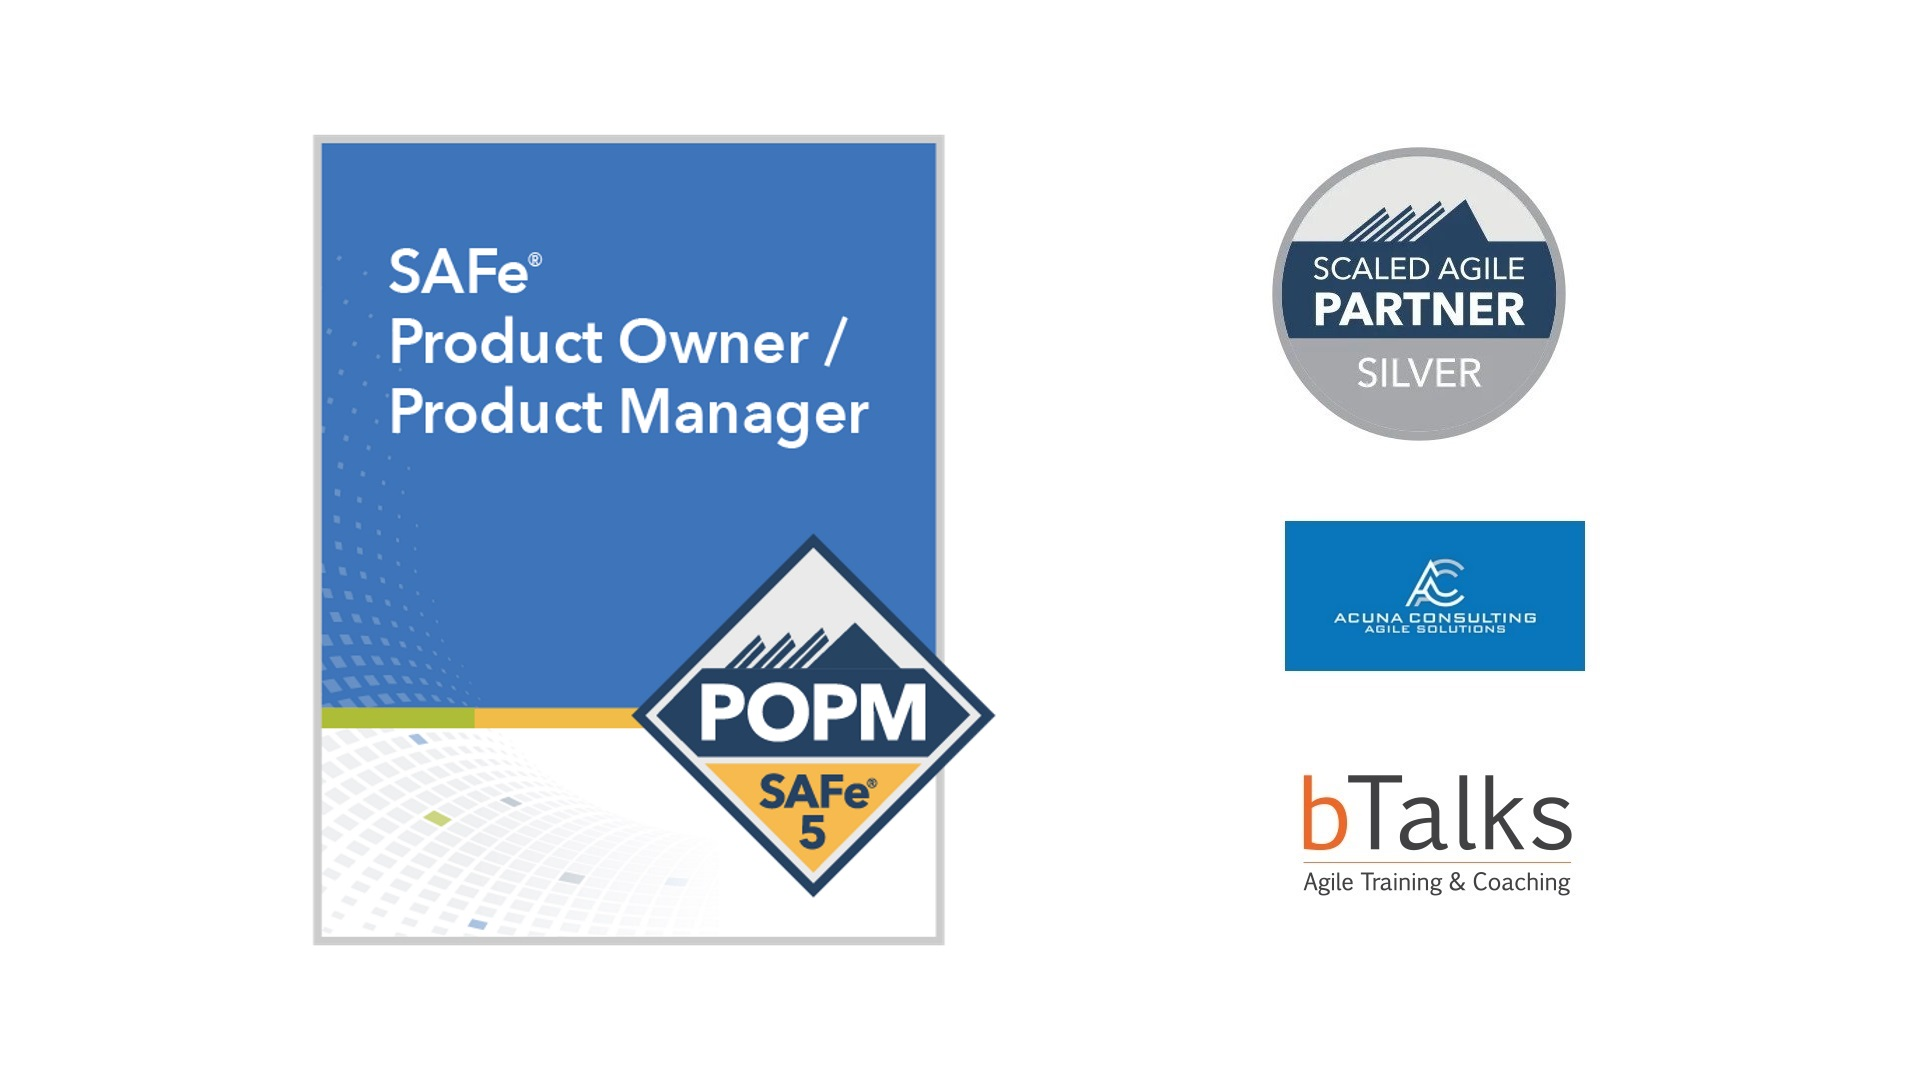 SAFe® Product Owner/ Product Manager